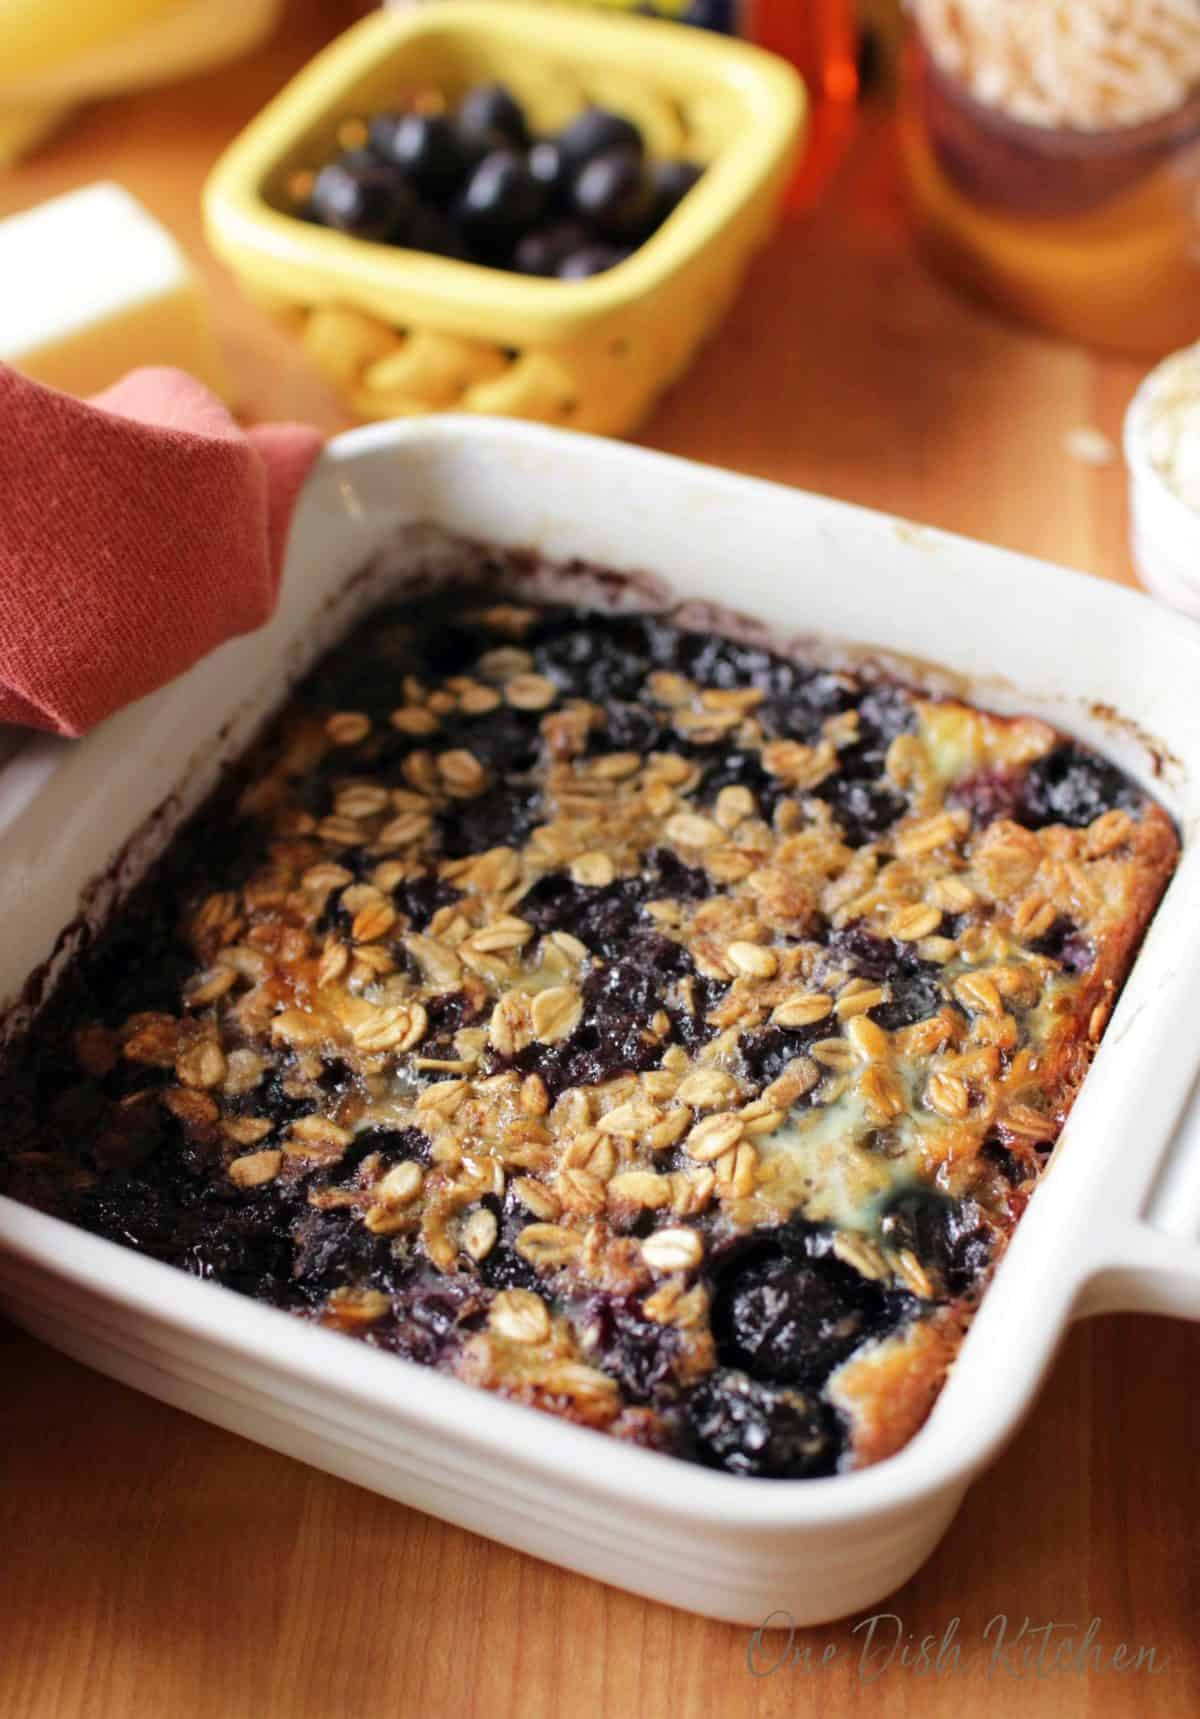 baked oatmeal with blueberries in a white square baking dish.